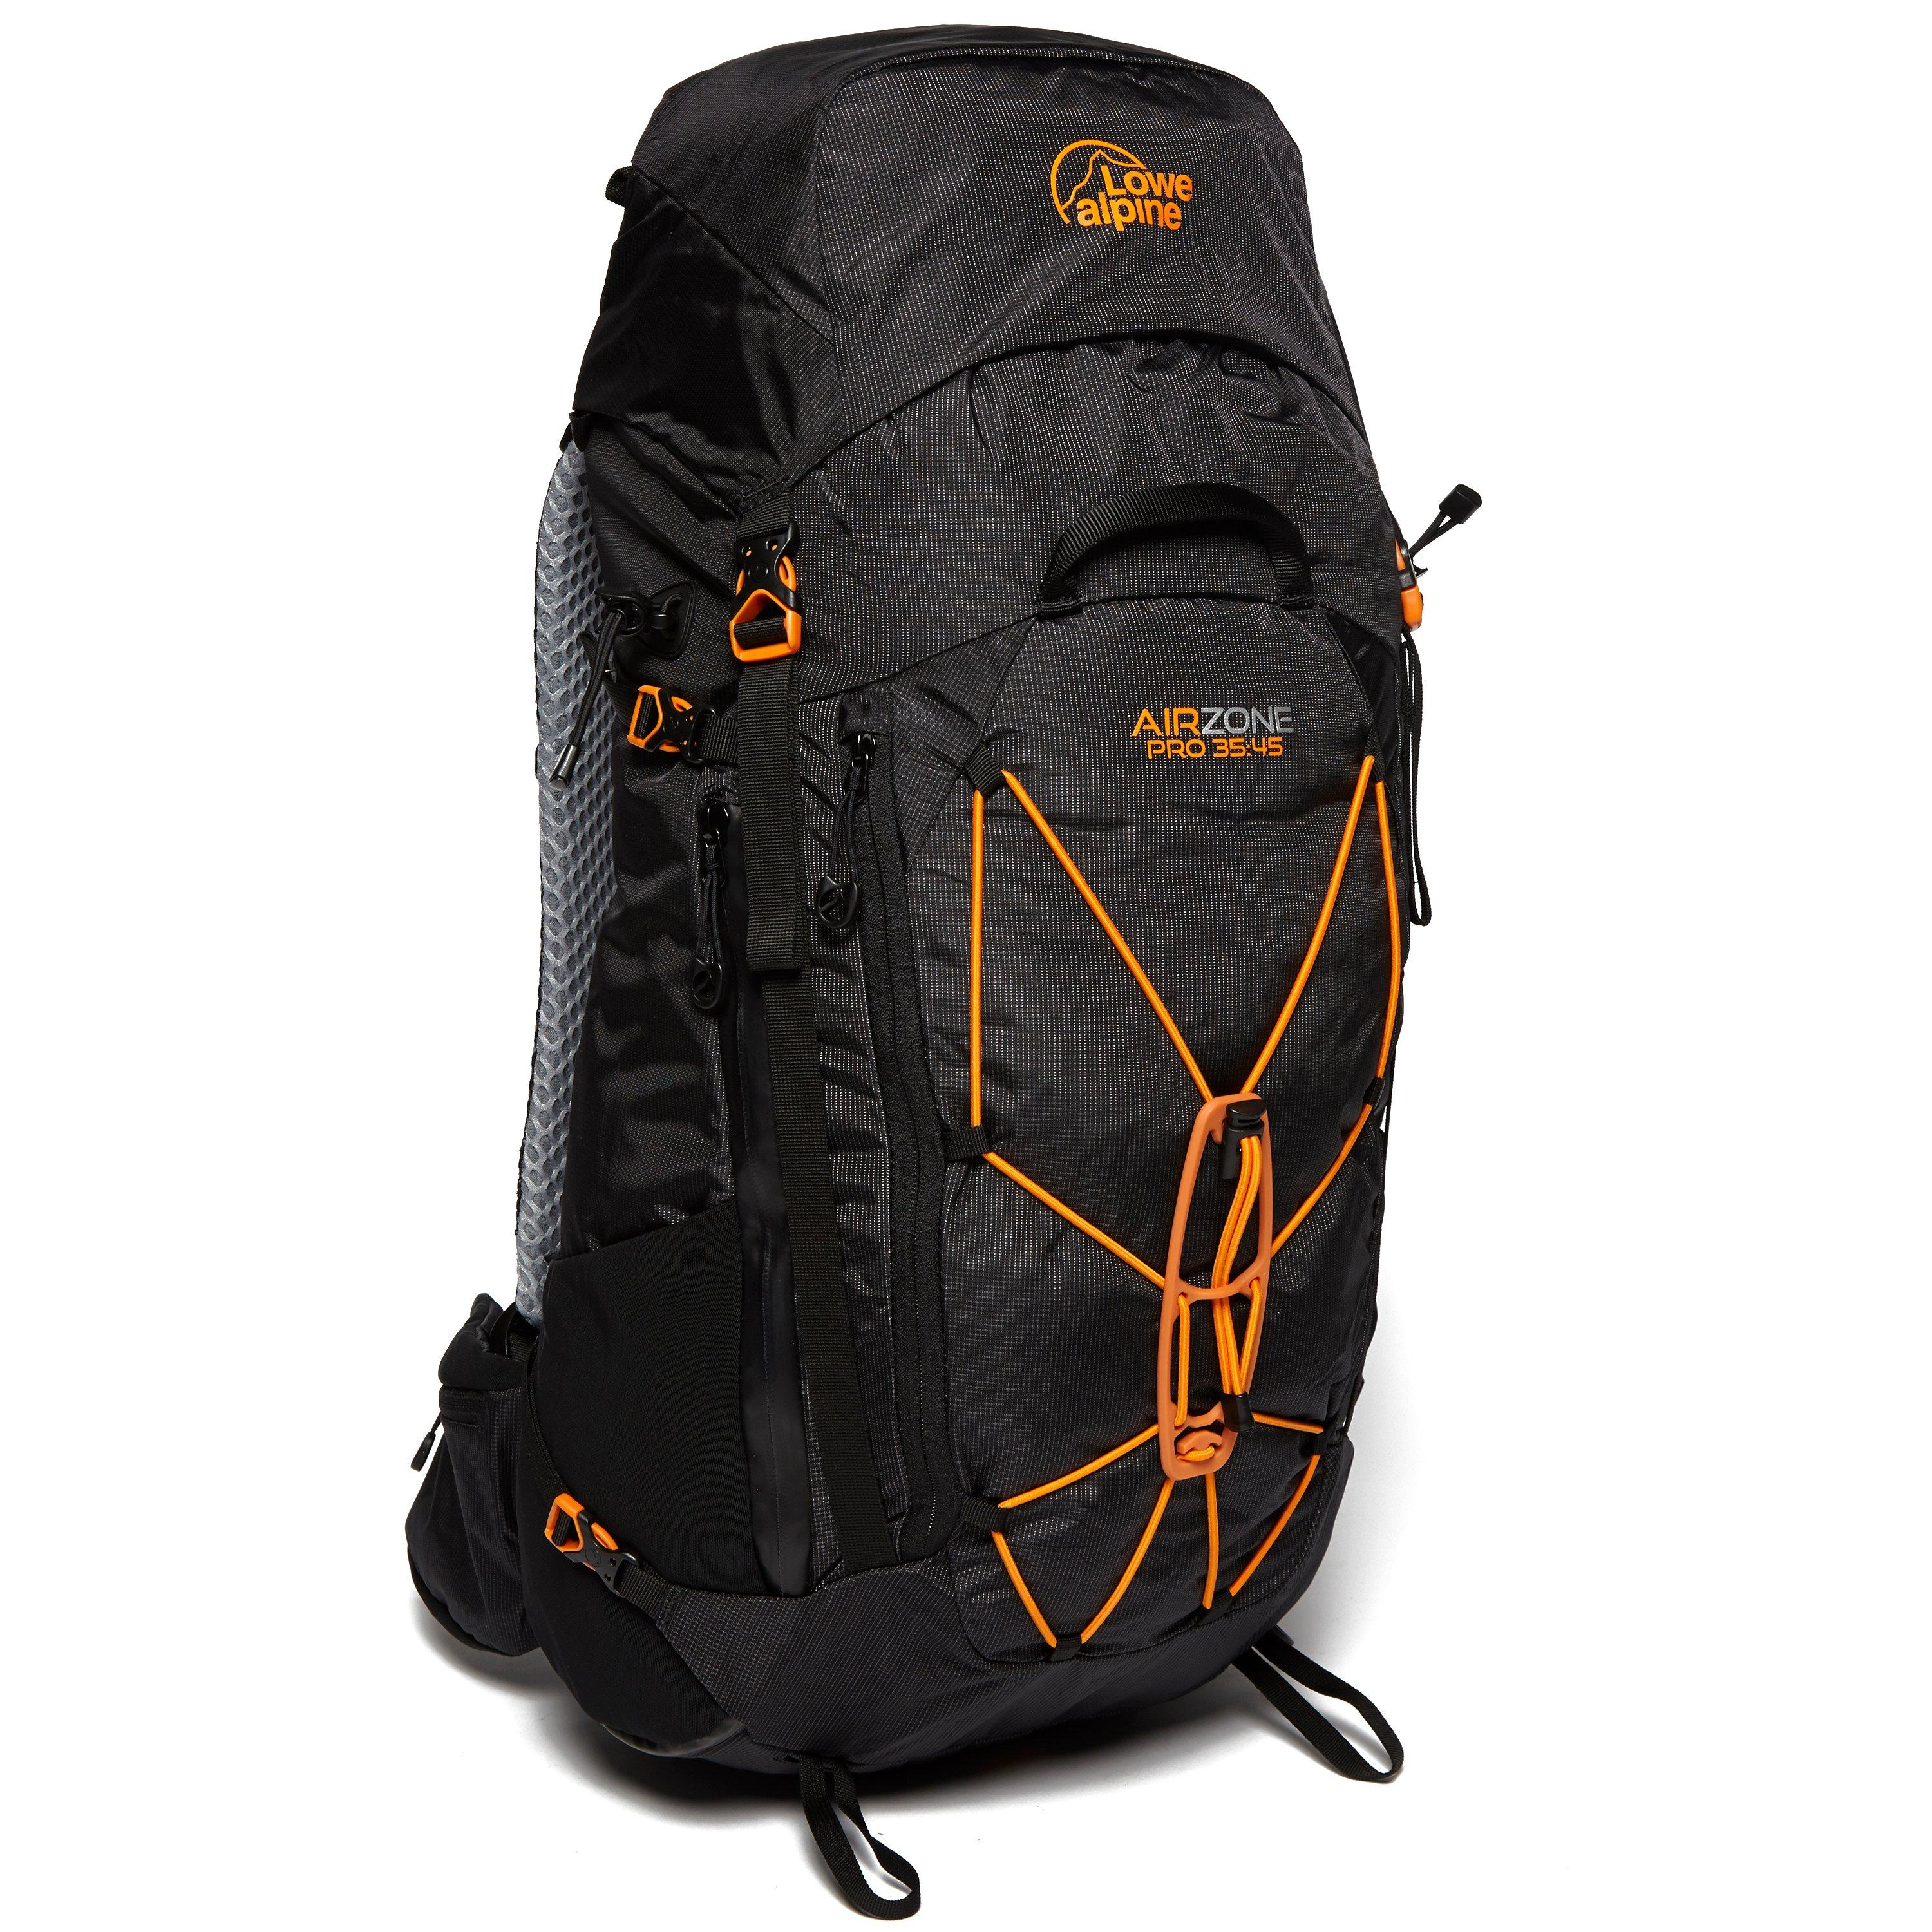 Lowe Alpine AirZone Pro 35 45L Backpack b1bf1772acbd7